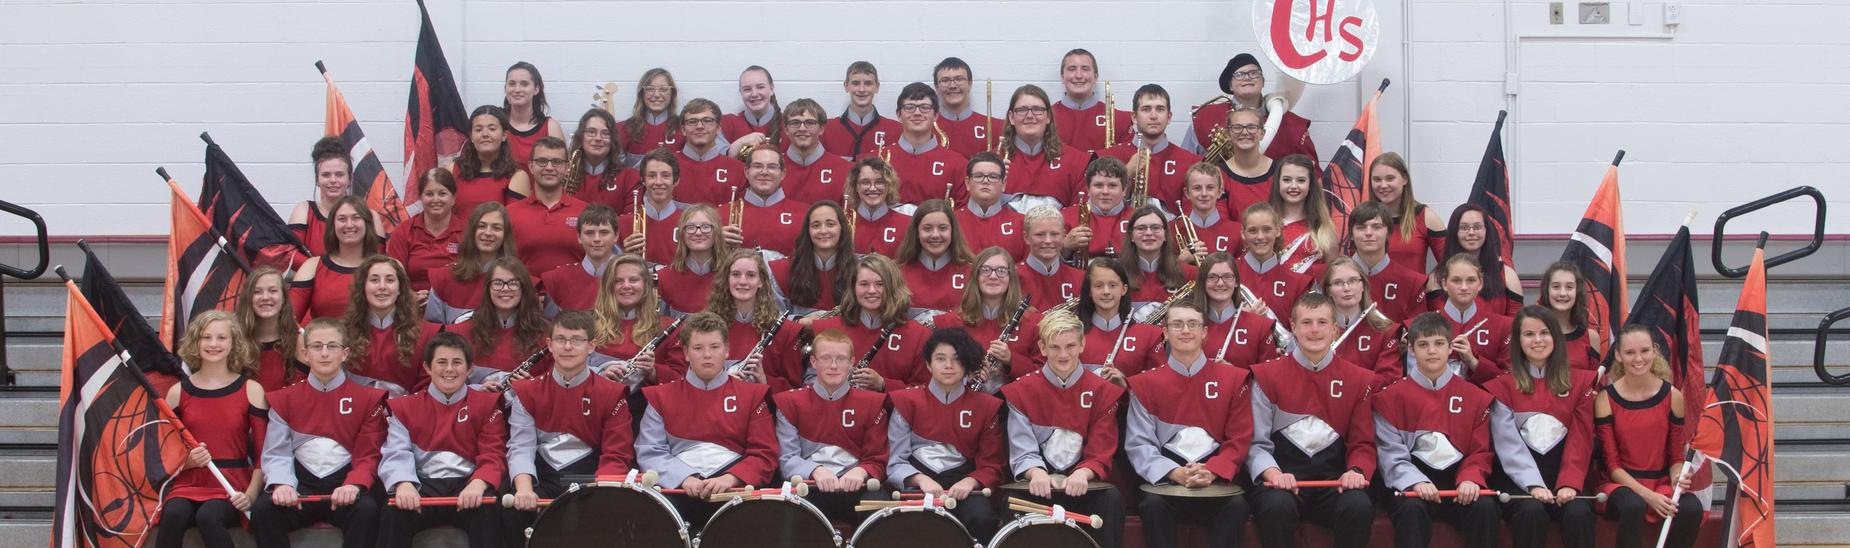 Central High School Marching Band